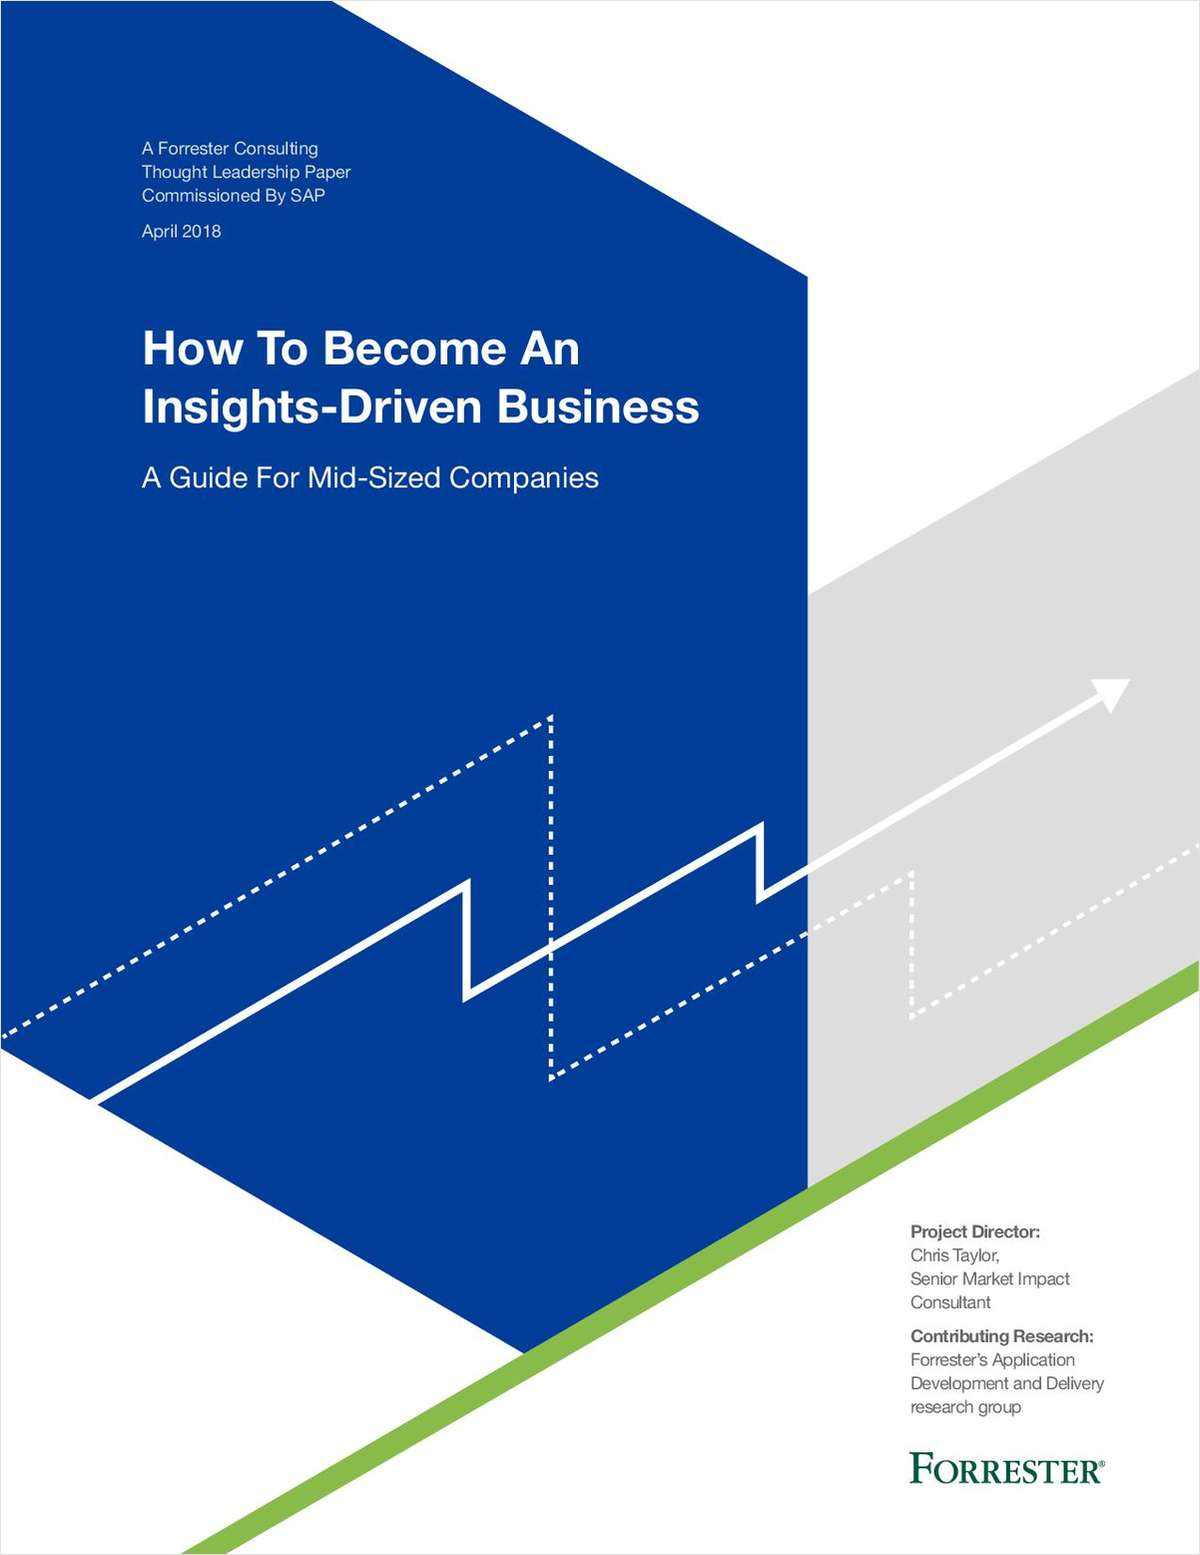 How to Become an Insights-Driven Business: A Guide for Midsized Companies by Forrester